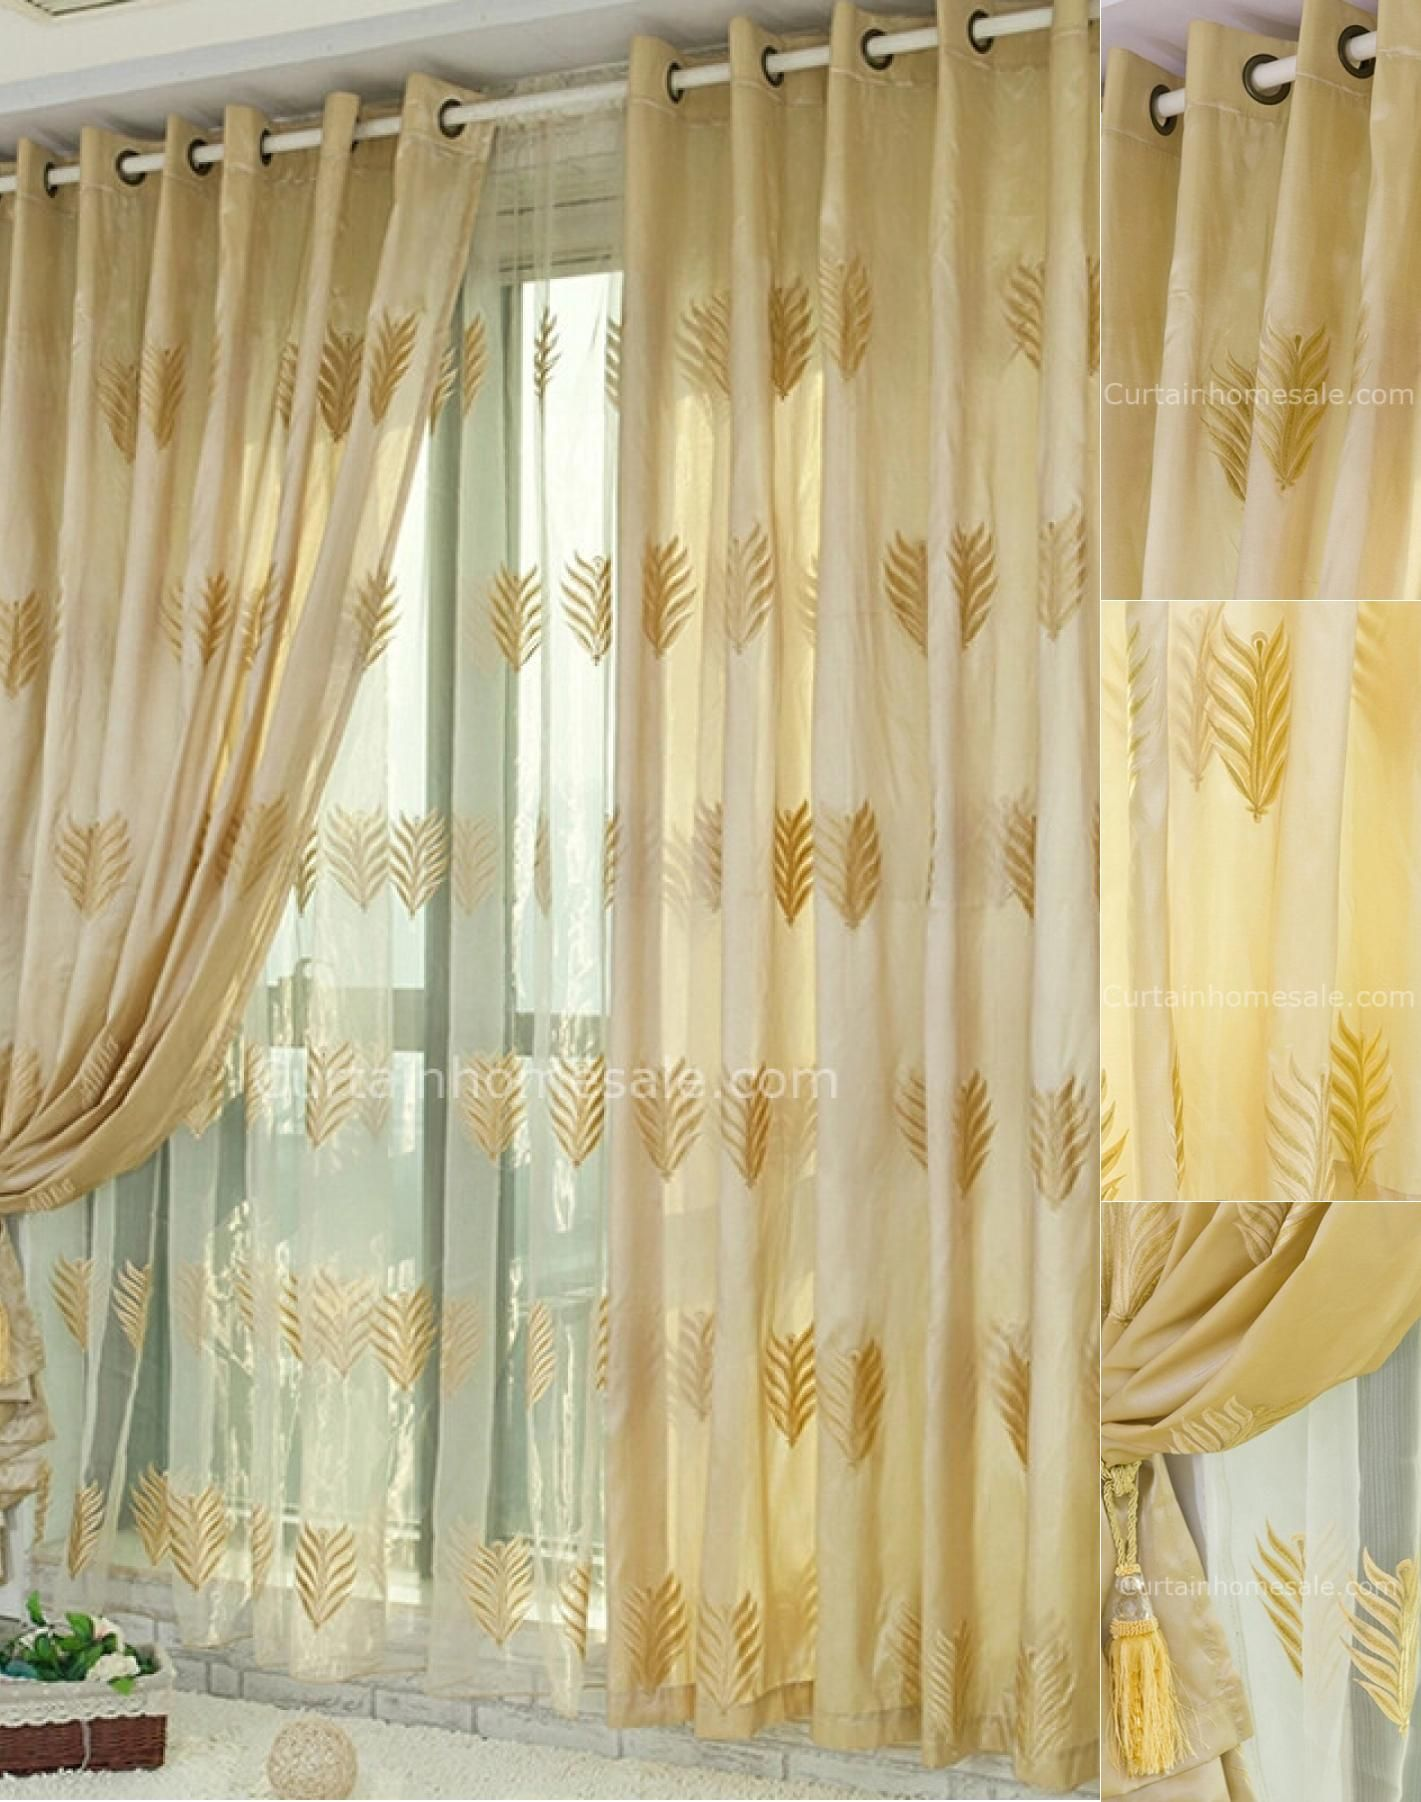 Fabulous Leaf Patterns Embroidery Bedroom Blackout yellow ...